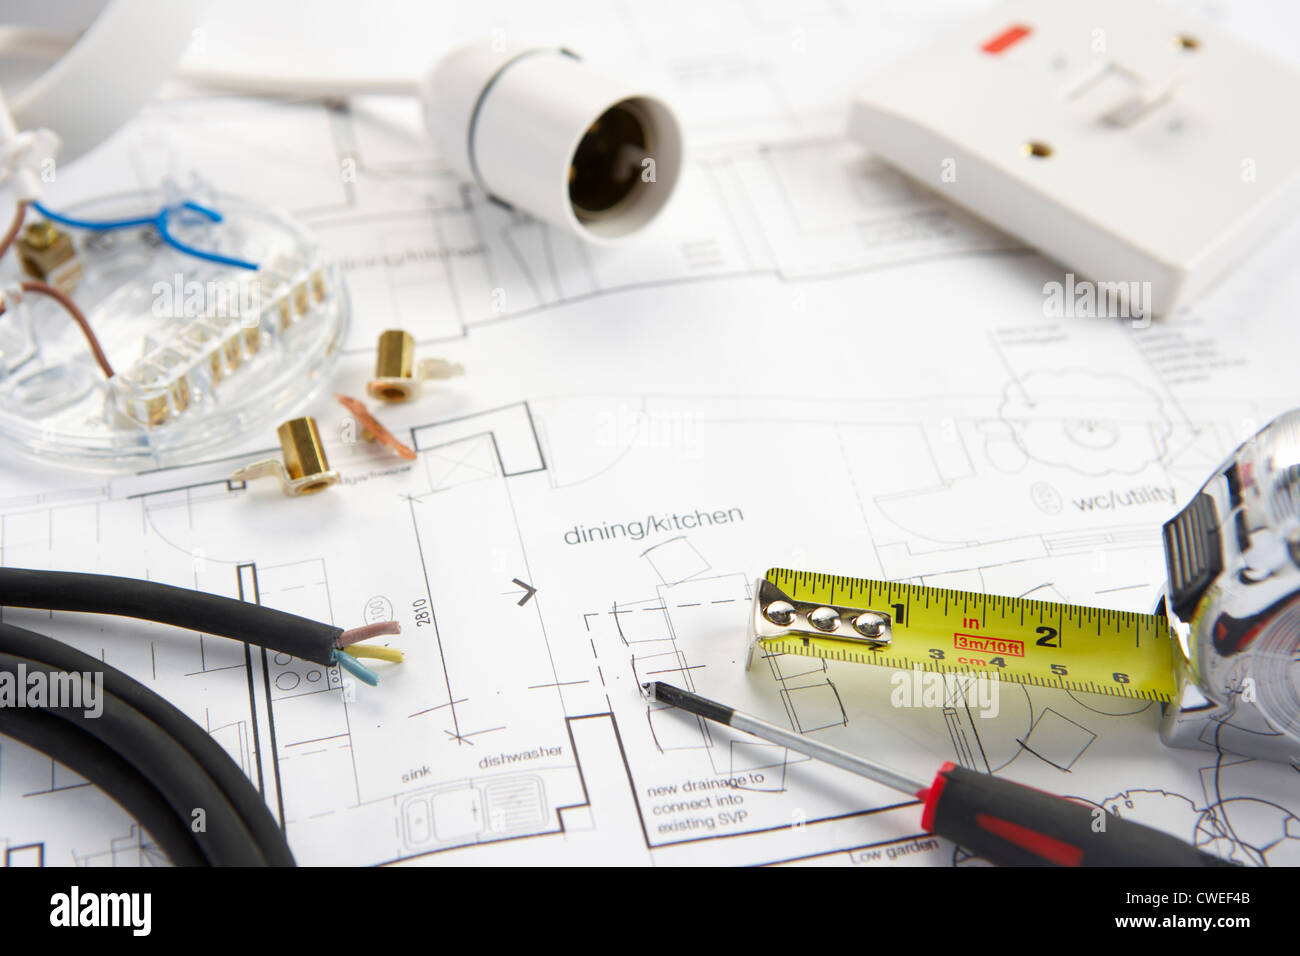 Wiring tools and materials - Stock Image